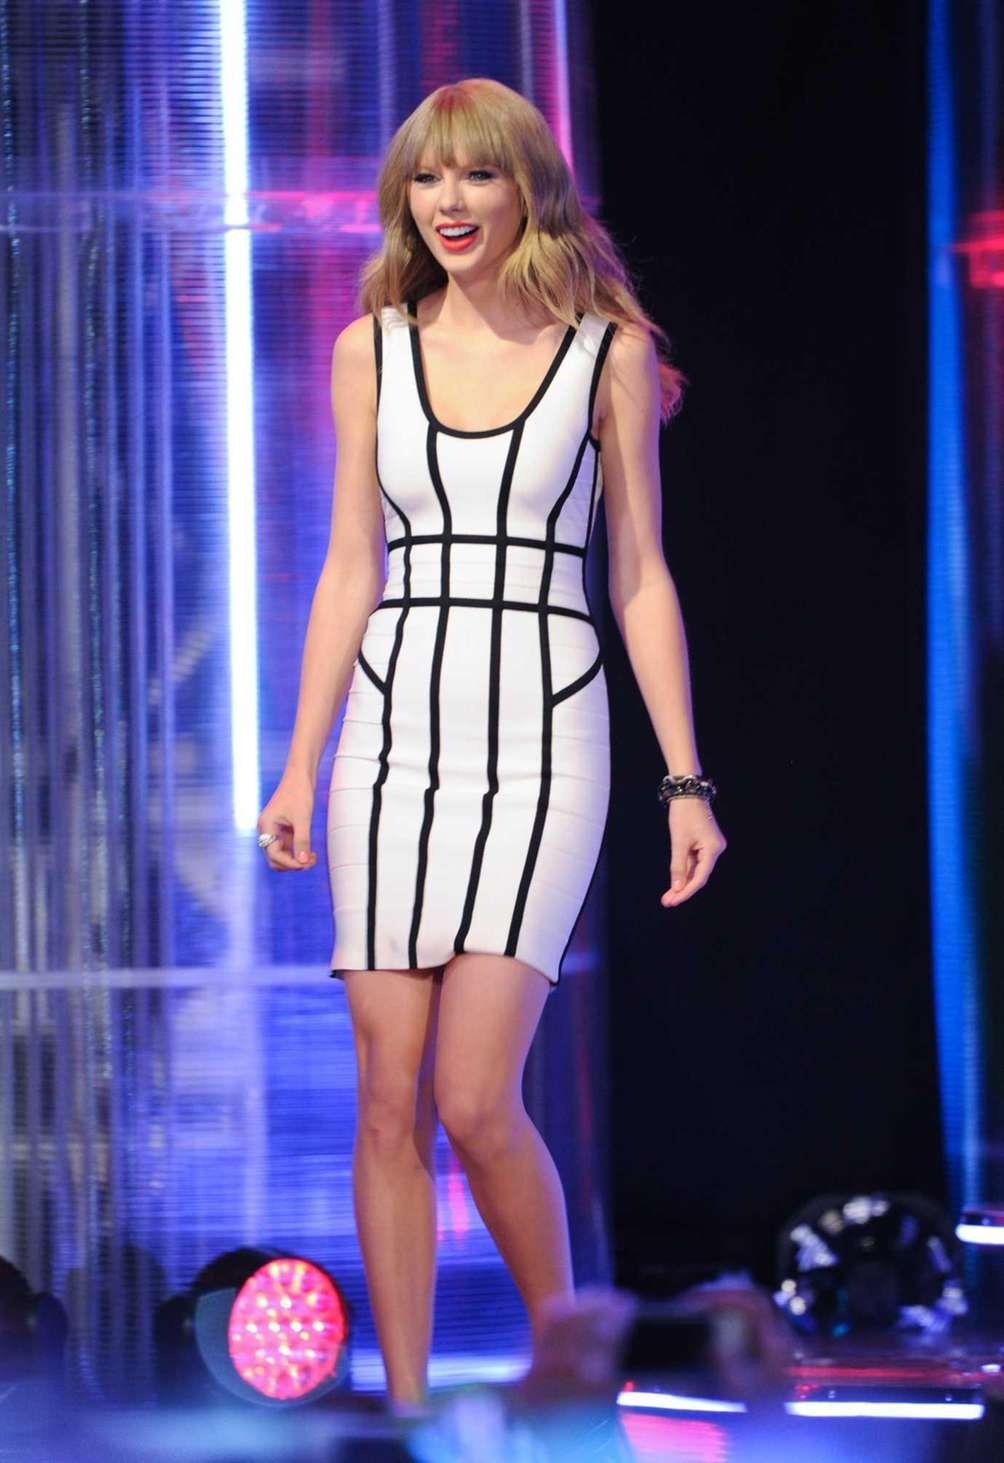 Taylor Swift onstage at the 2013 MuchMusic Video